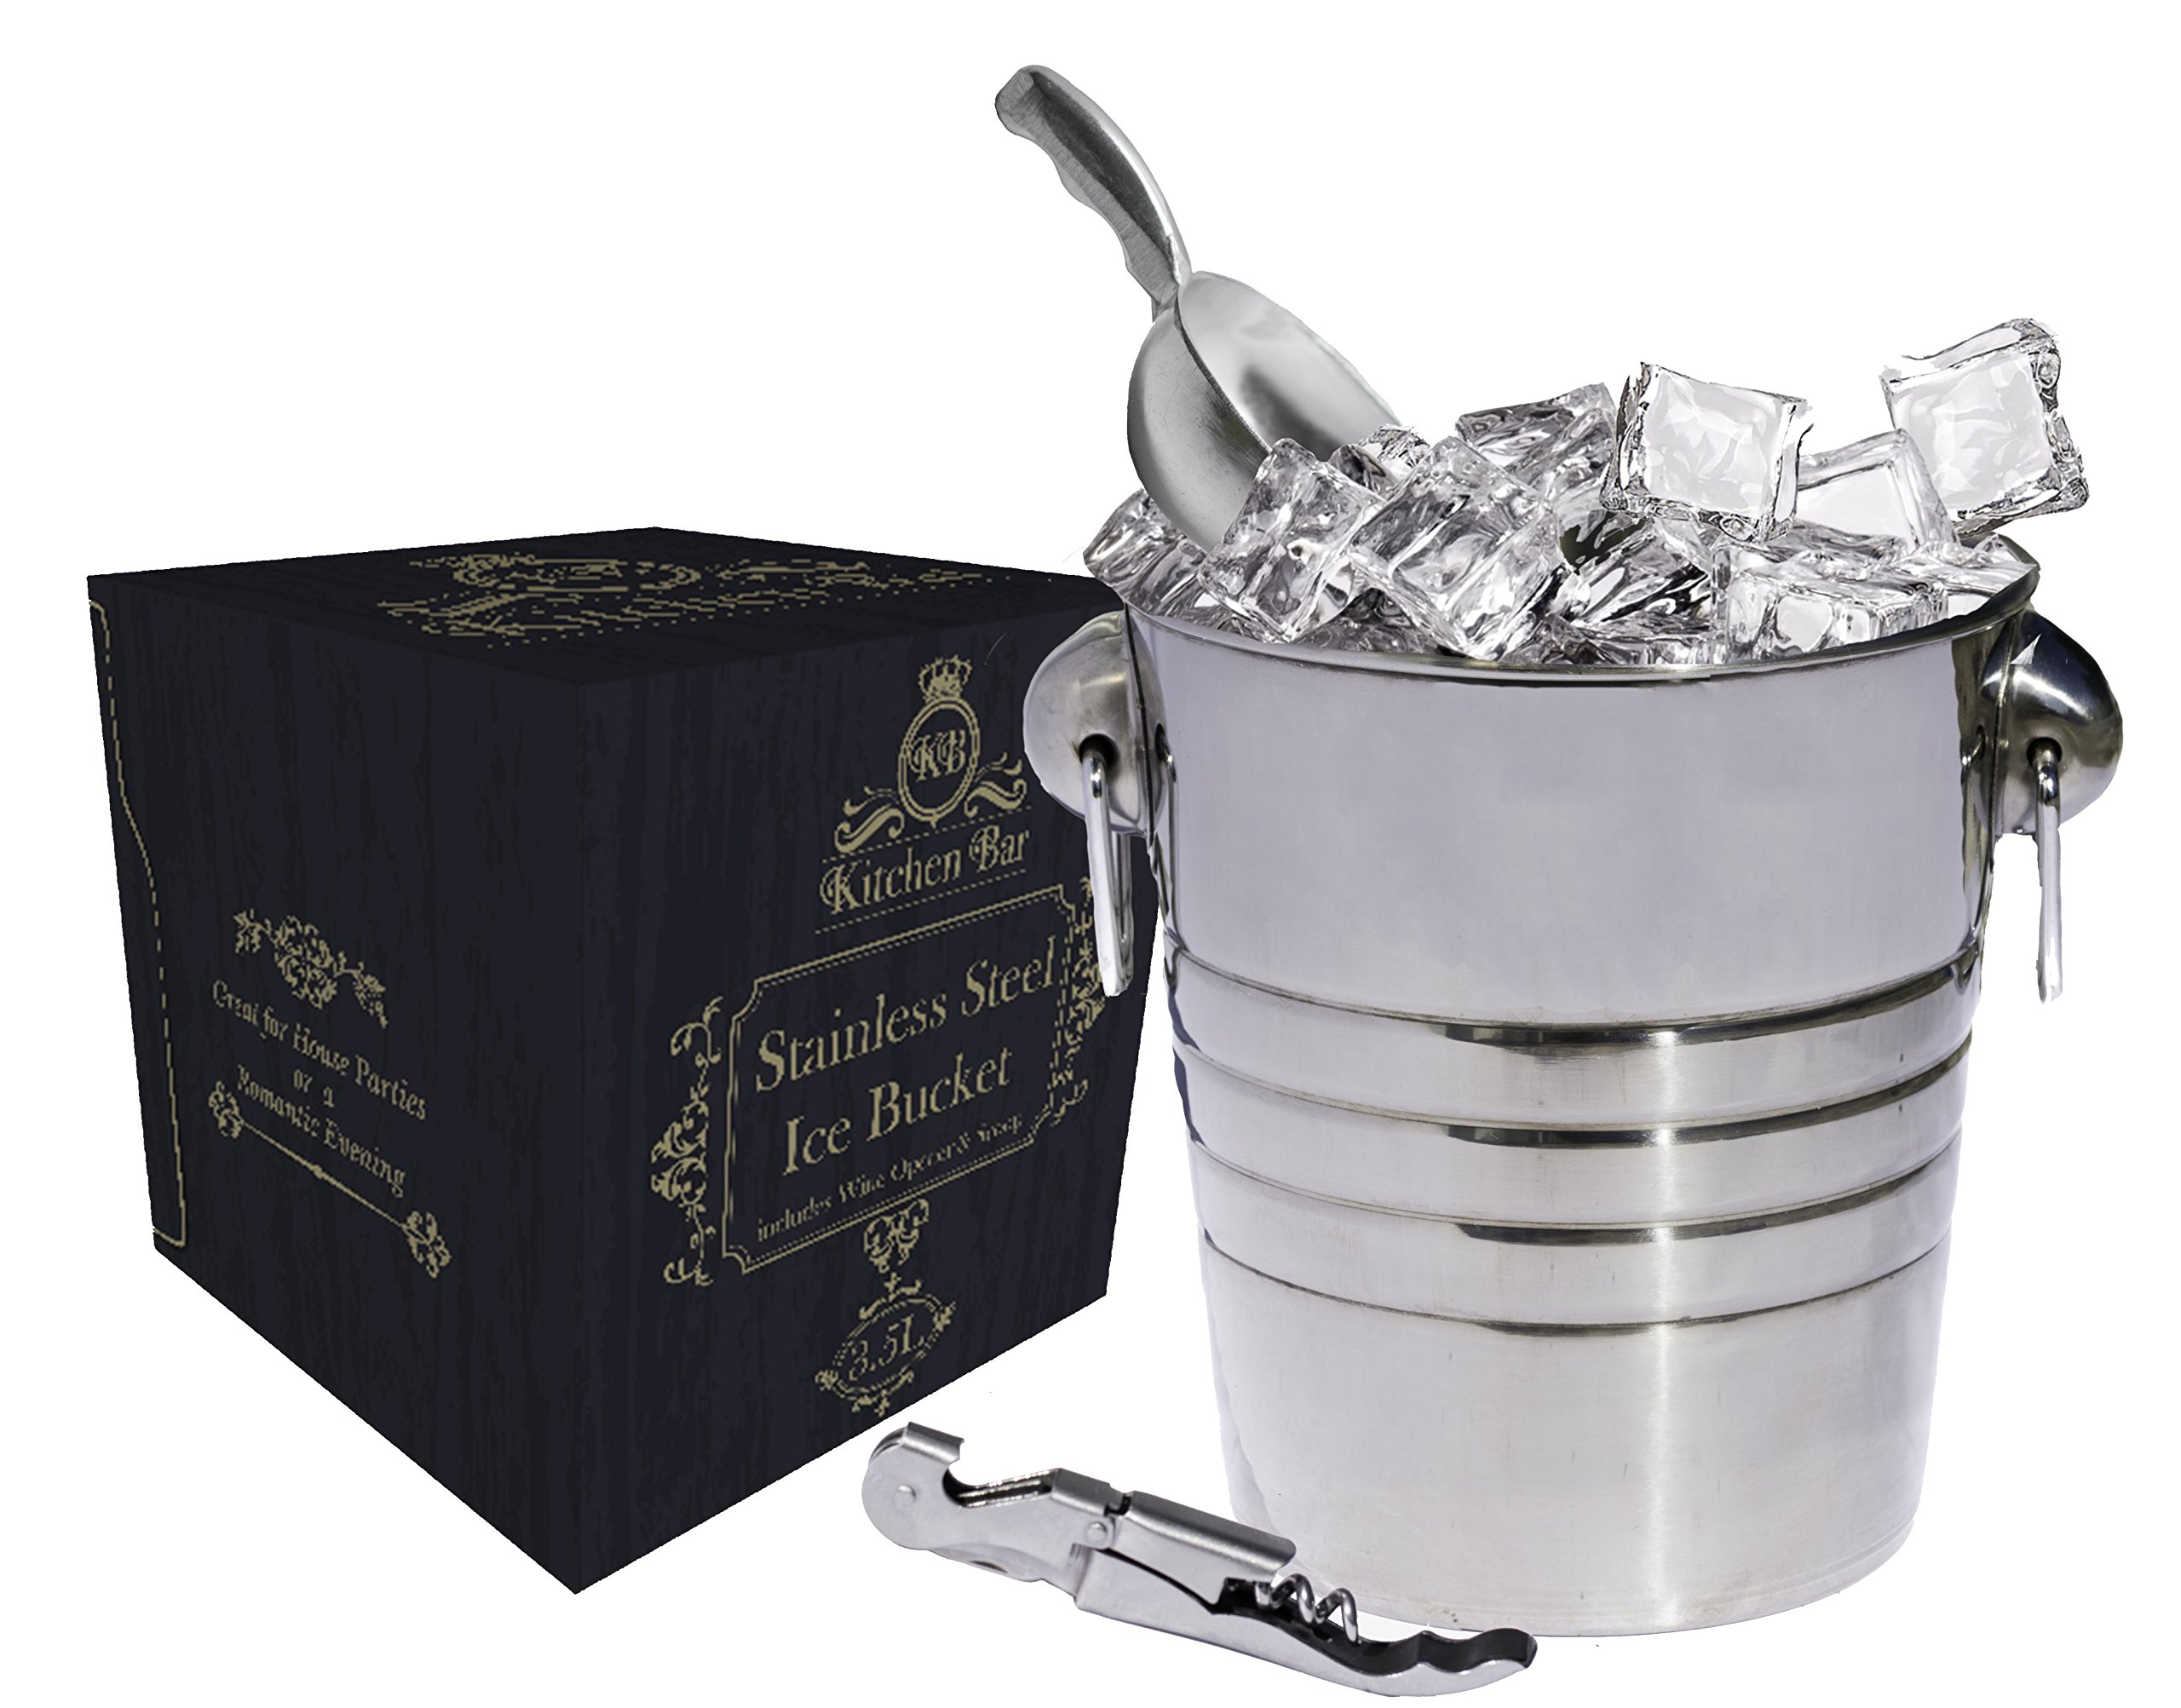 Kitchen Bar Premium Stainless Steel Silver Ice Bucket - 3.5 Liter (4qt) Large Beer, Wine Bucket With Scoop, Fingerprint Off for Party Events Gatherings Gift ServerWare Tray Barware